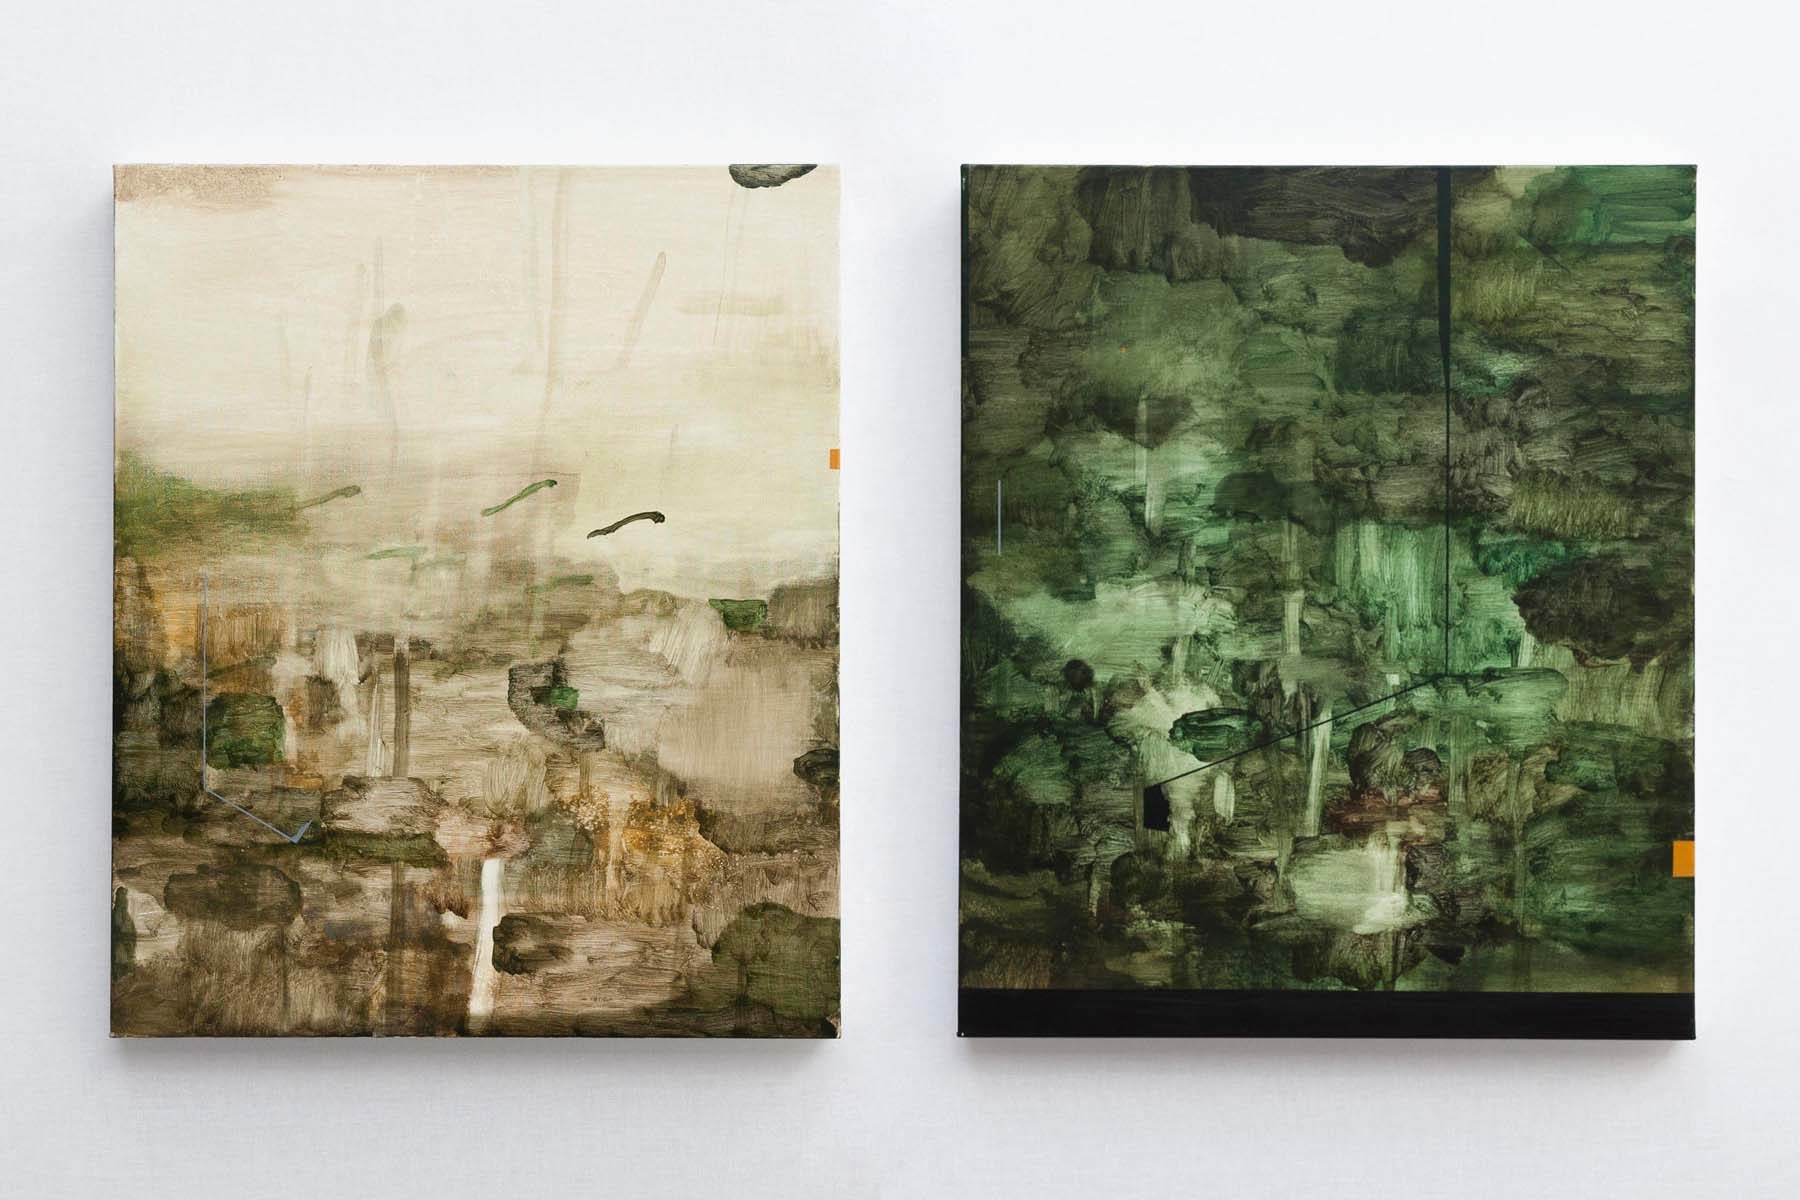 Mirko Baricchi, Selva #9 and #10, 2018, oil on canvas, 60 x 50 cm each